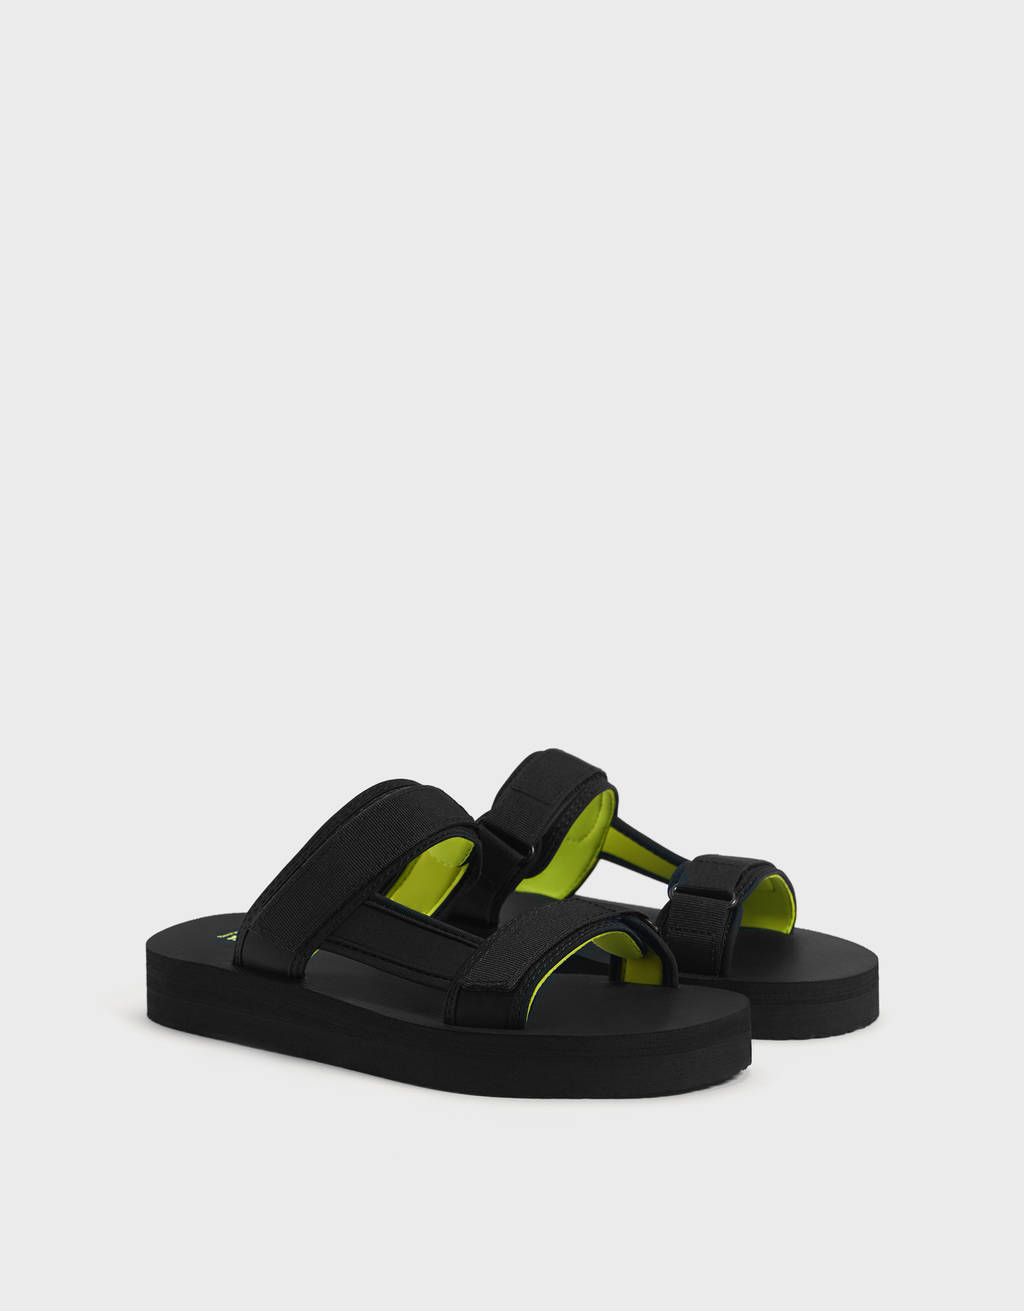 Men's technical strappy sandals